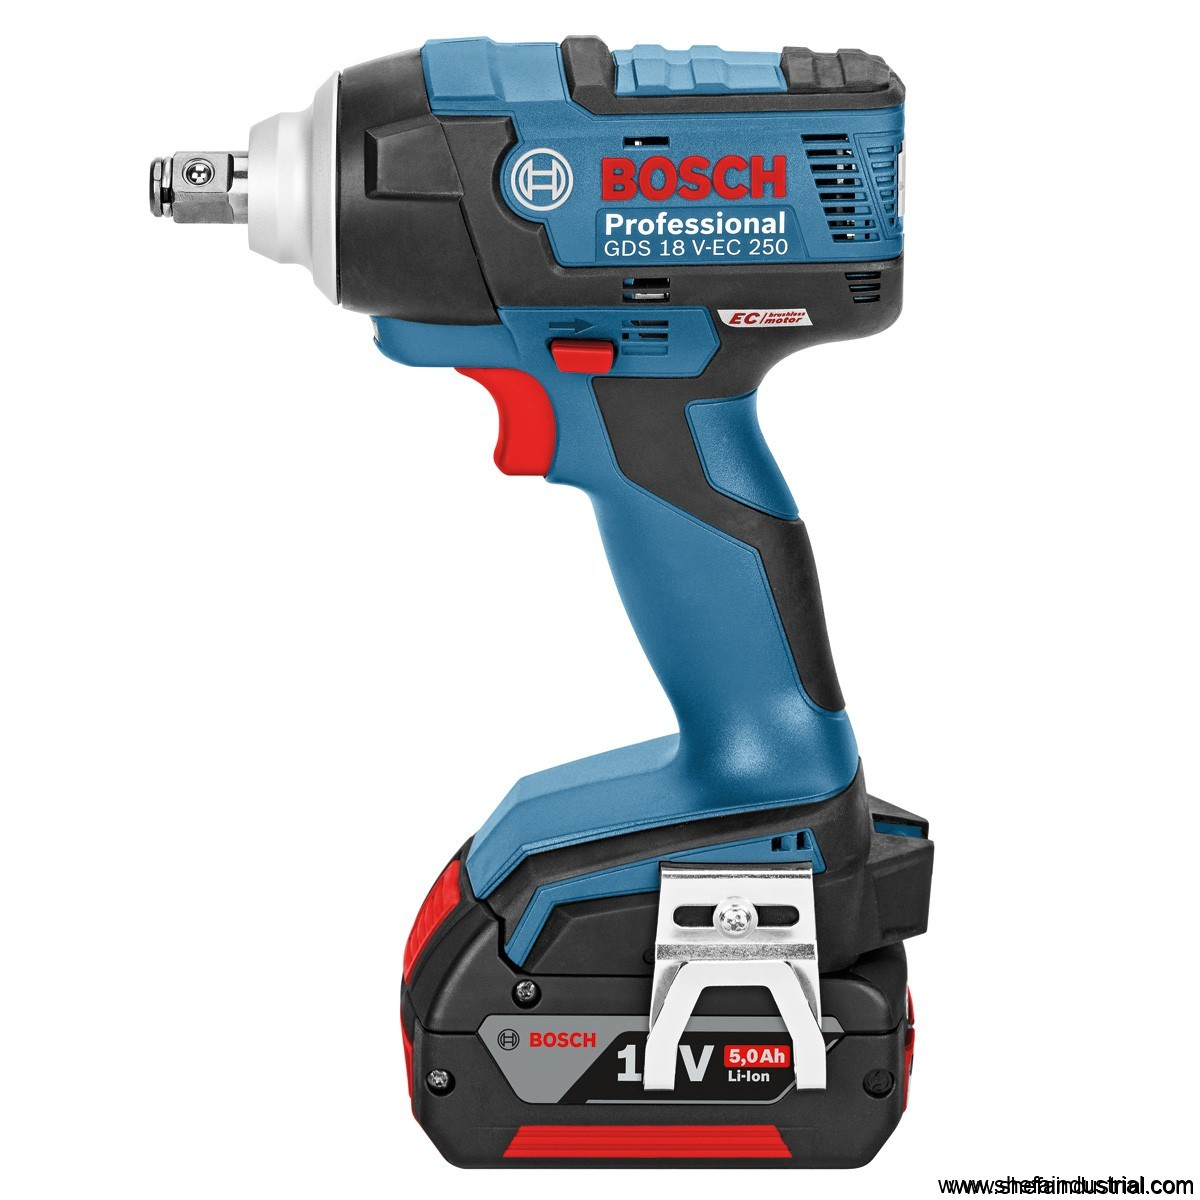 bosch gds 18 v ec 250 impact wrench shefa industrial products inc. Black Bedroom Furniture Sets. Home Design Ideas